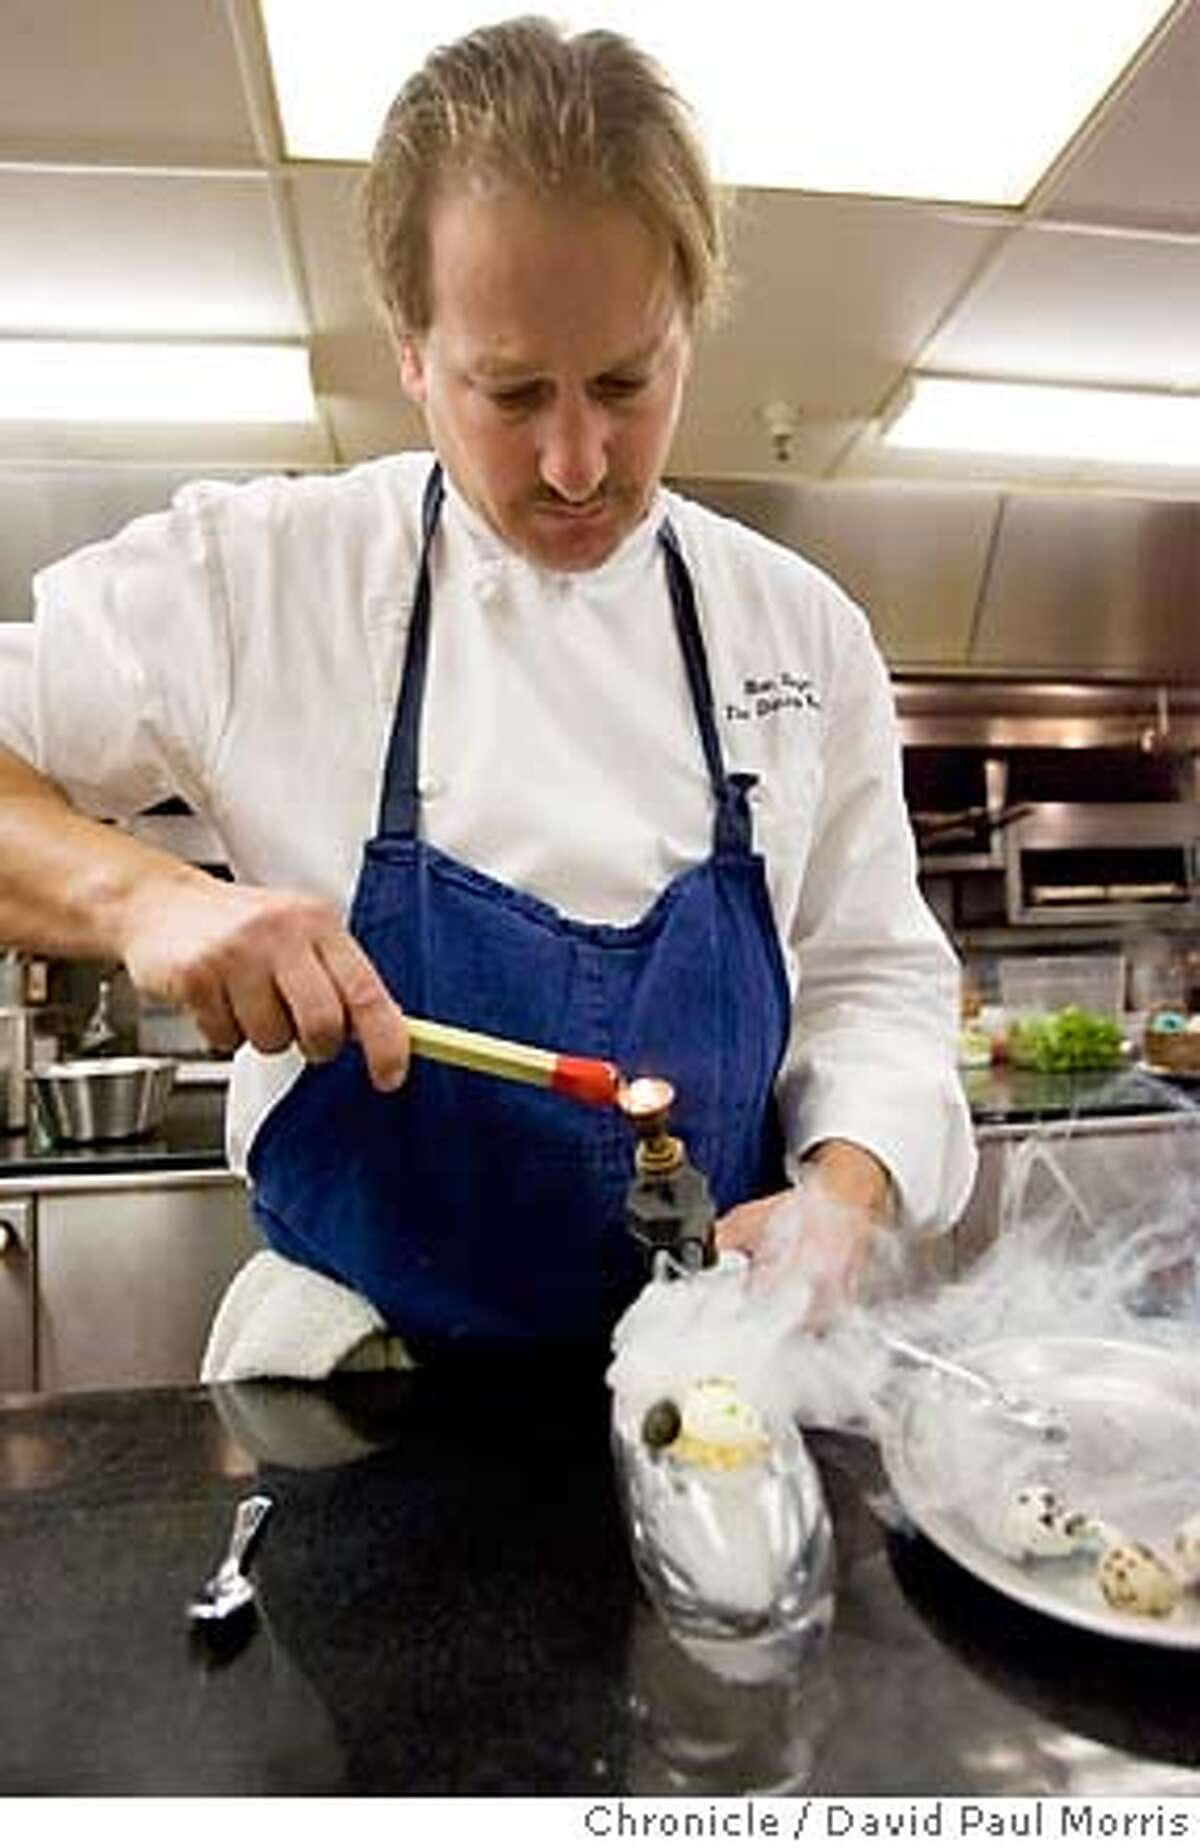 SAN FRANCISCO, CA - AUGUST 24: A 64 C degree Quail Egg with golden Osetra Caviar, crouton smoked with cedar smoke made by Executive Chef Ron Siegel is seen at the Ritz Carlton on August 24, 2007 in San Francisco, California. (Photo by David Paul Morris/The Chronicle)